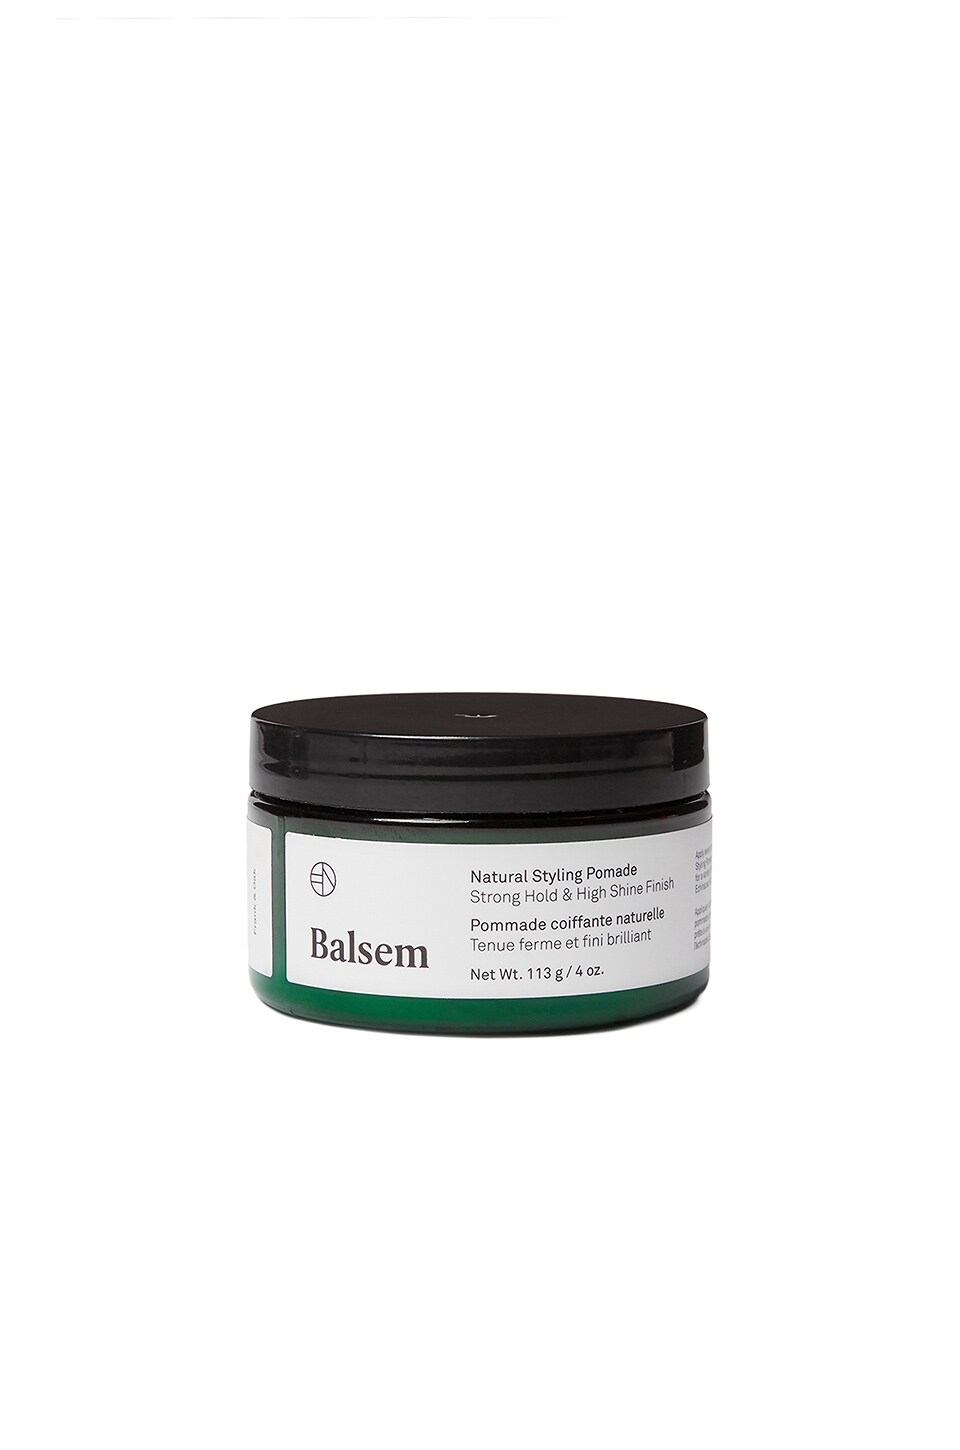 Natural Styling Pomade by Balsem